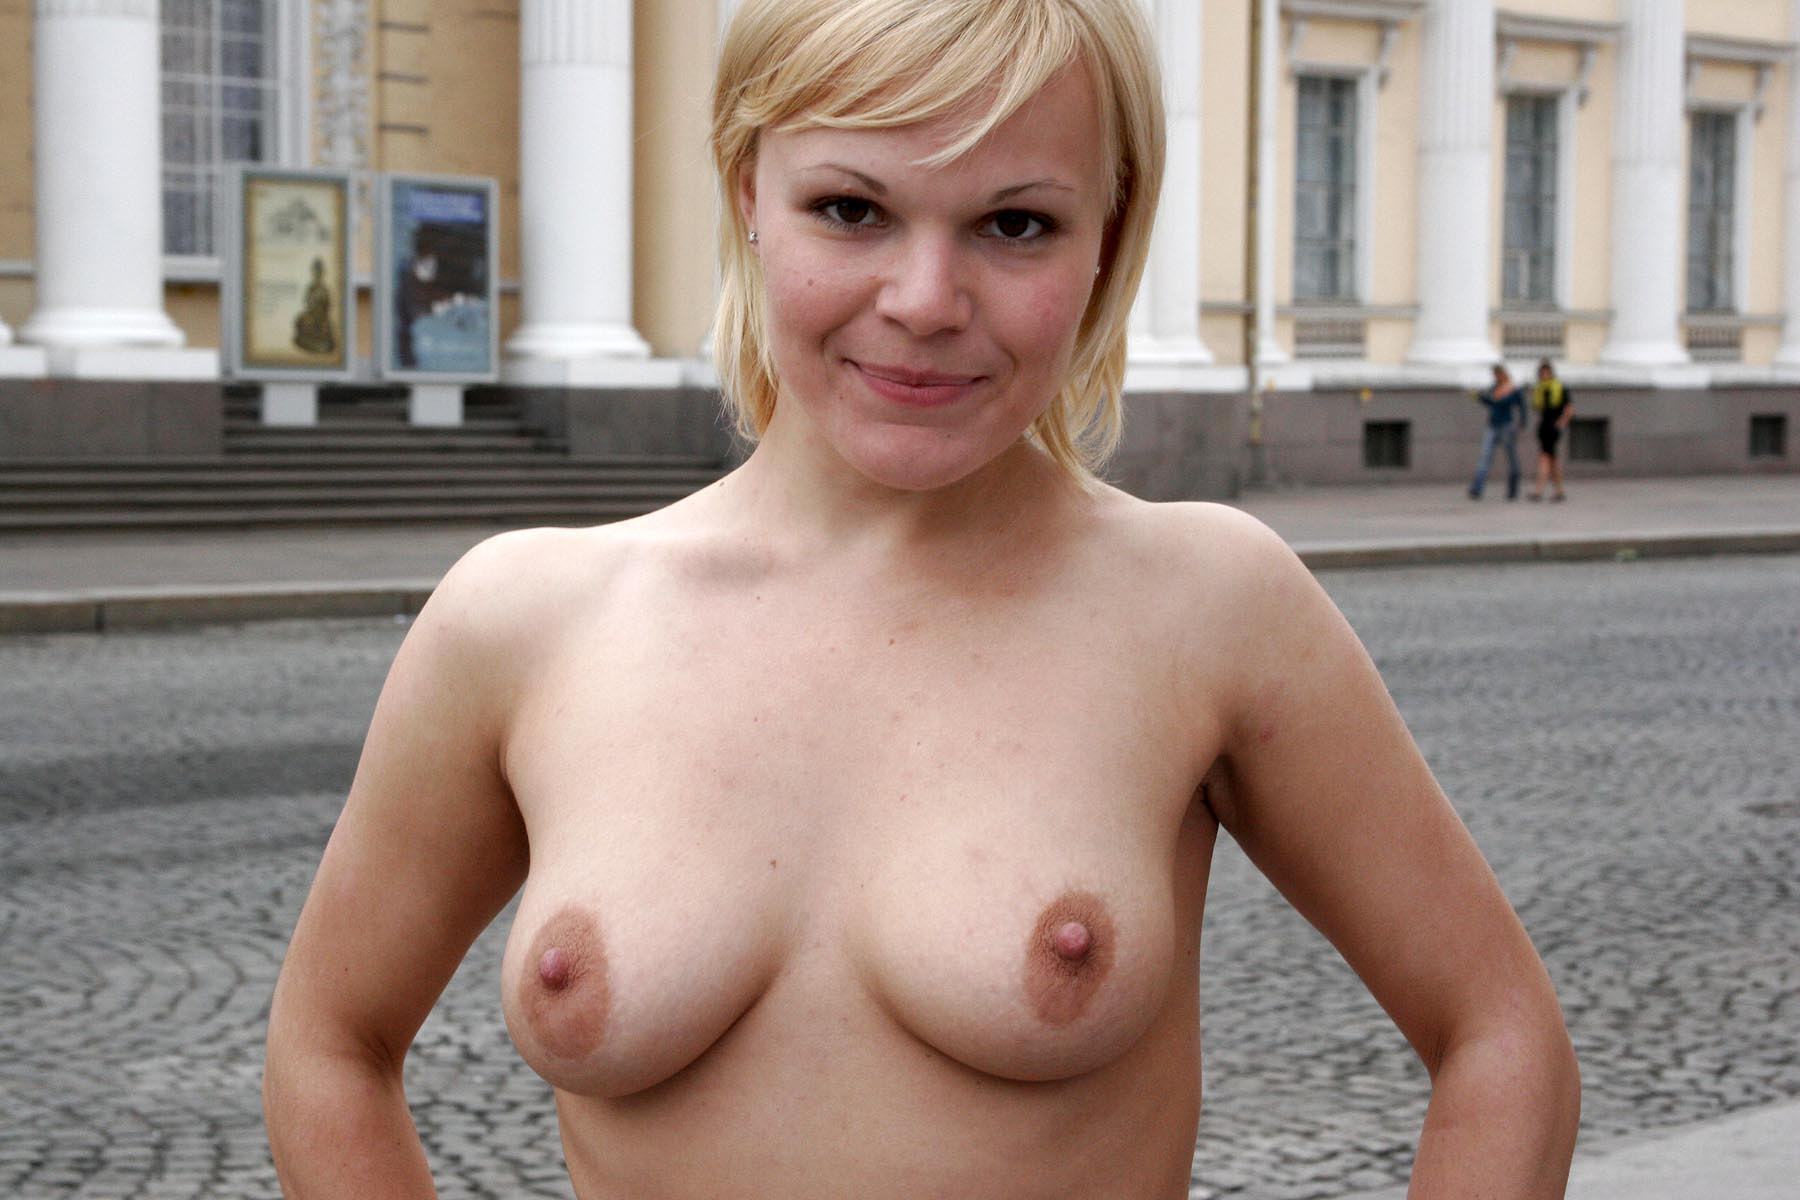 Shorthaired russian girl posing naked entertaining question